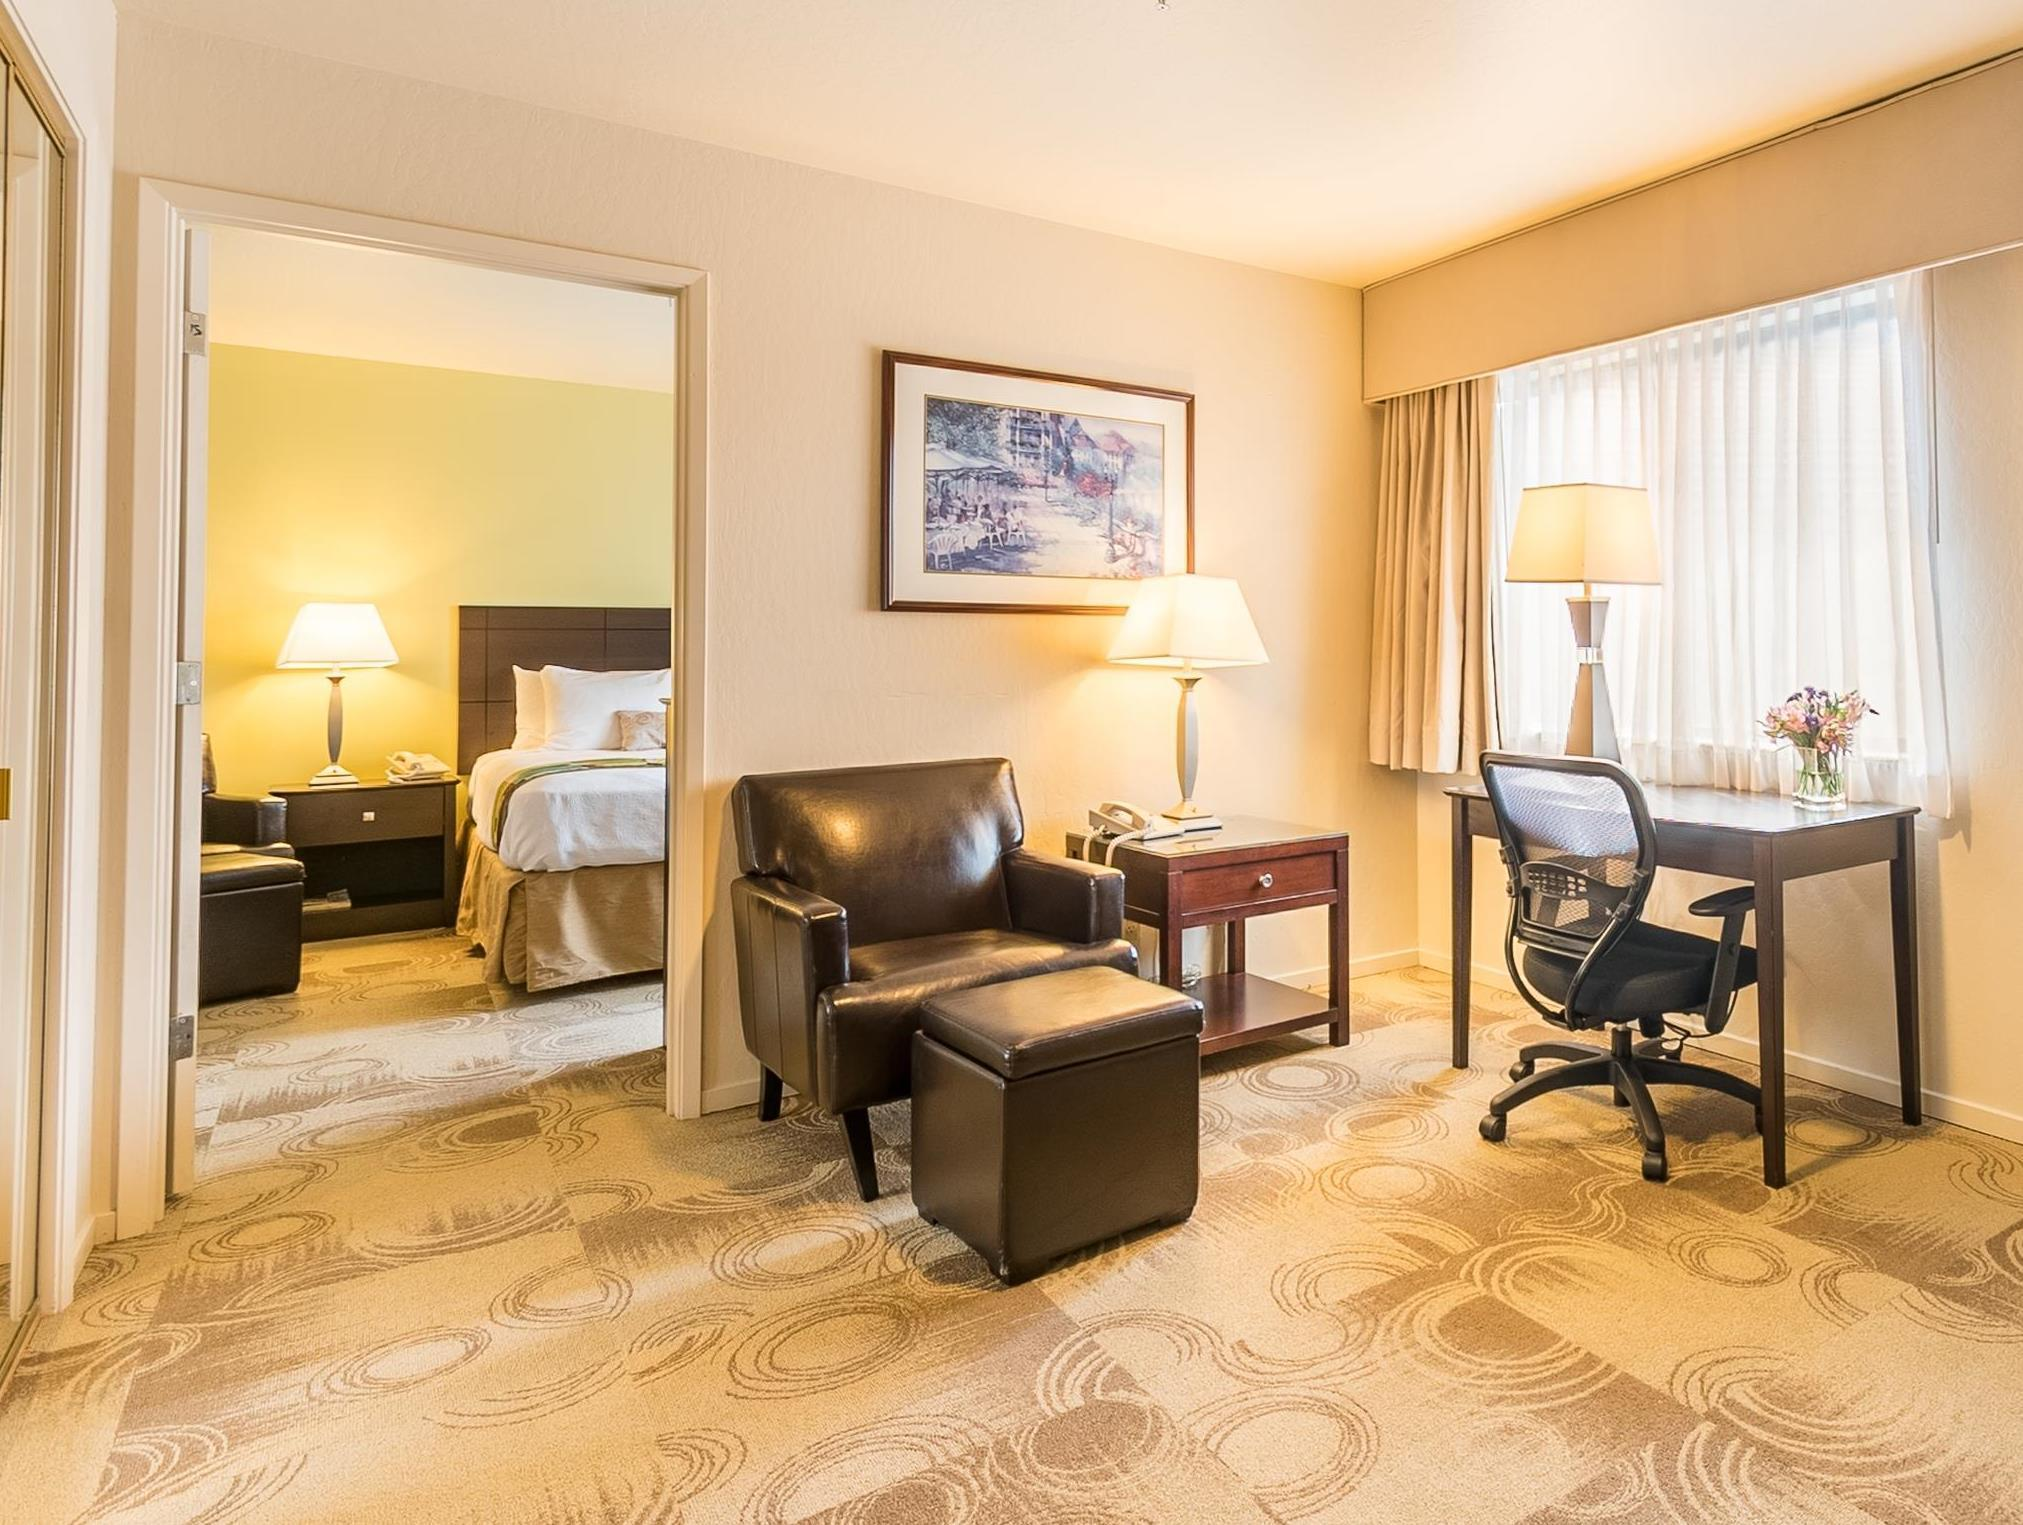 1 Queen Bed, Junior Suite - Free Internet In Room - Free Parking - Fridge - Microwave - Whirlpool